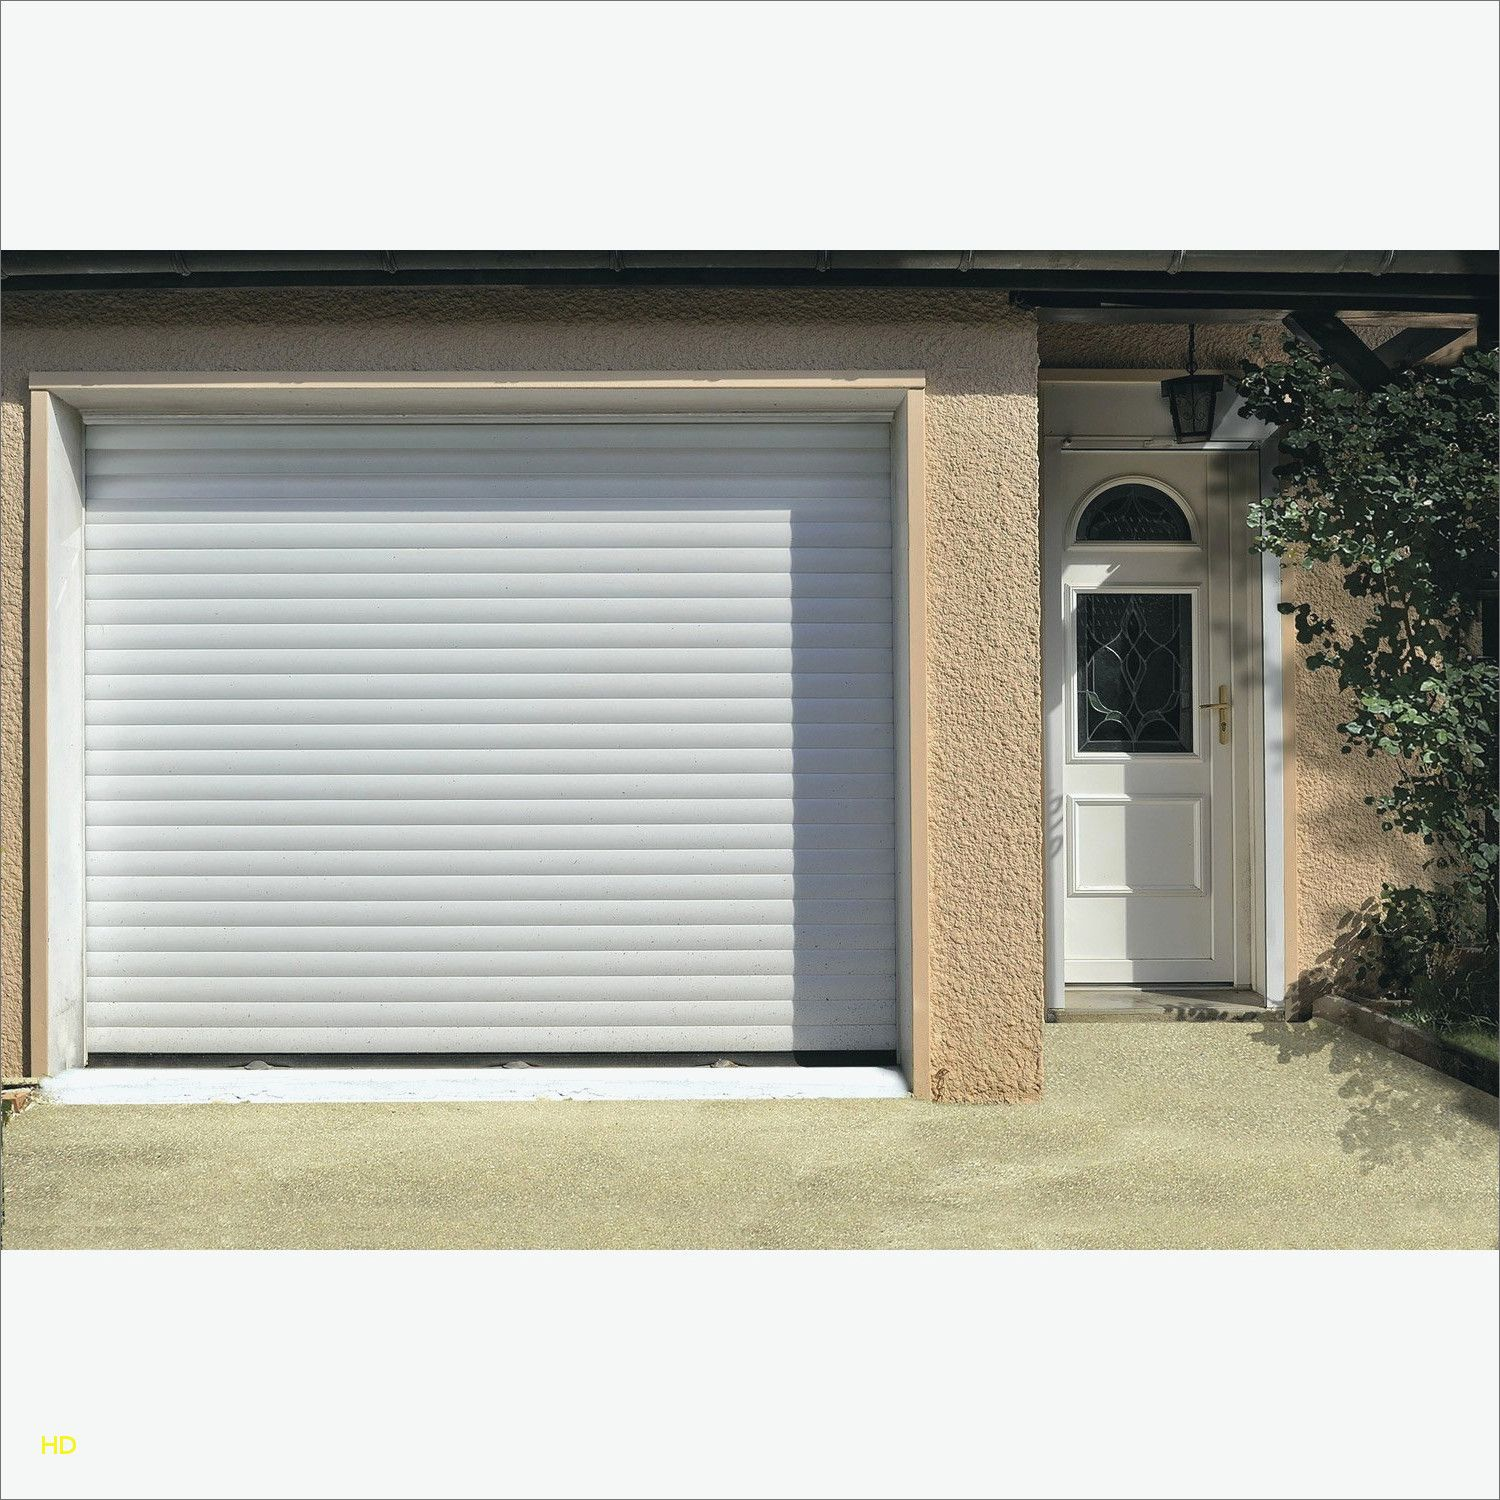 Luxury Castorama Porte De Garage Sectionnelle Porte De Garage Sectionnelle Porte Garage Salon De Jardin Castorama